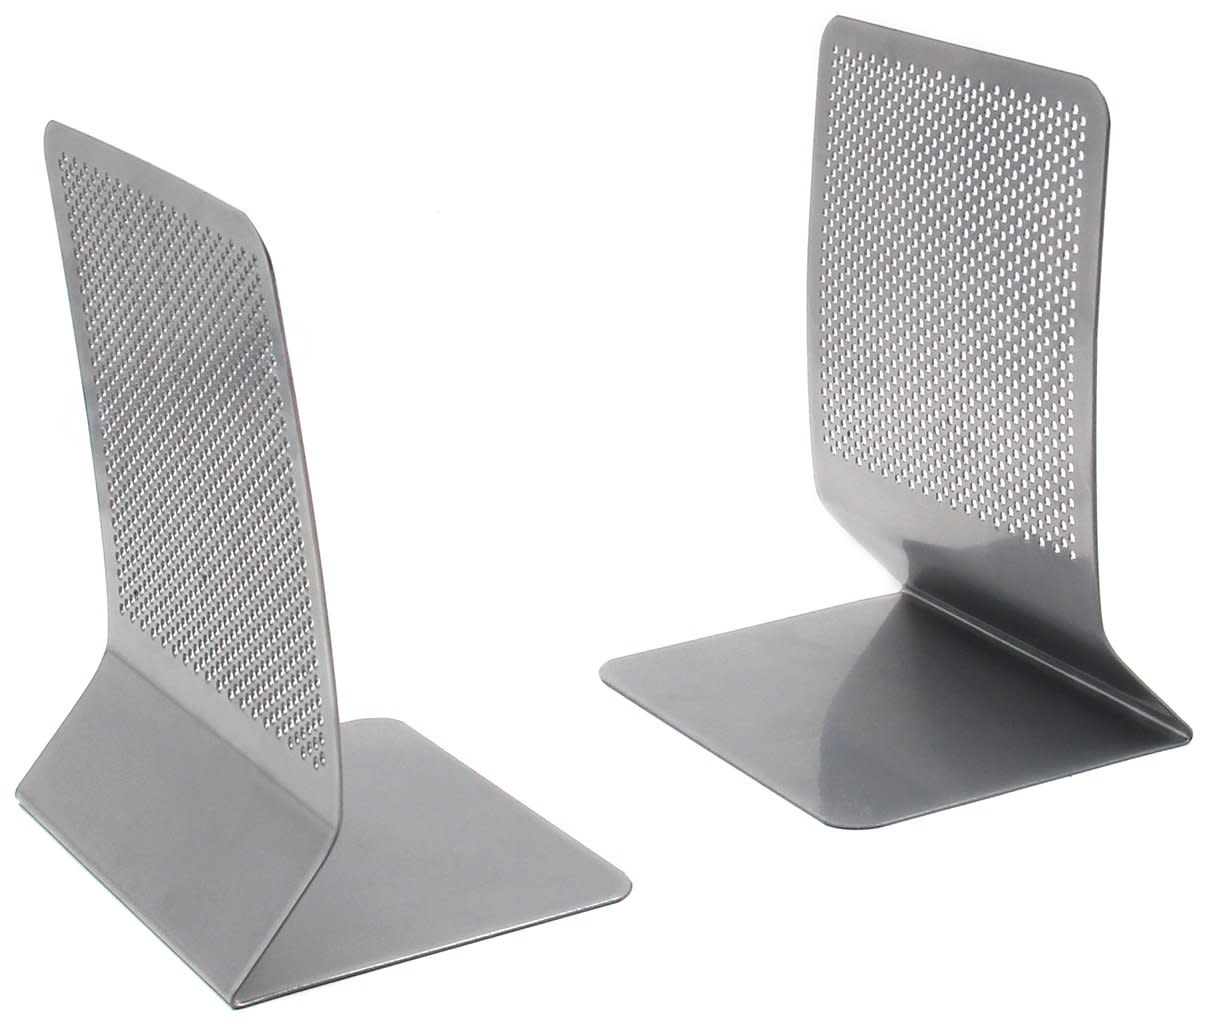 Bookends Mesh Steel Book Stand 1 Pair Silver Desk Accessories Workspace Office